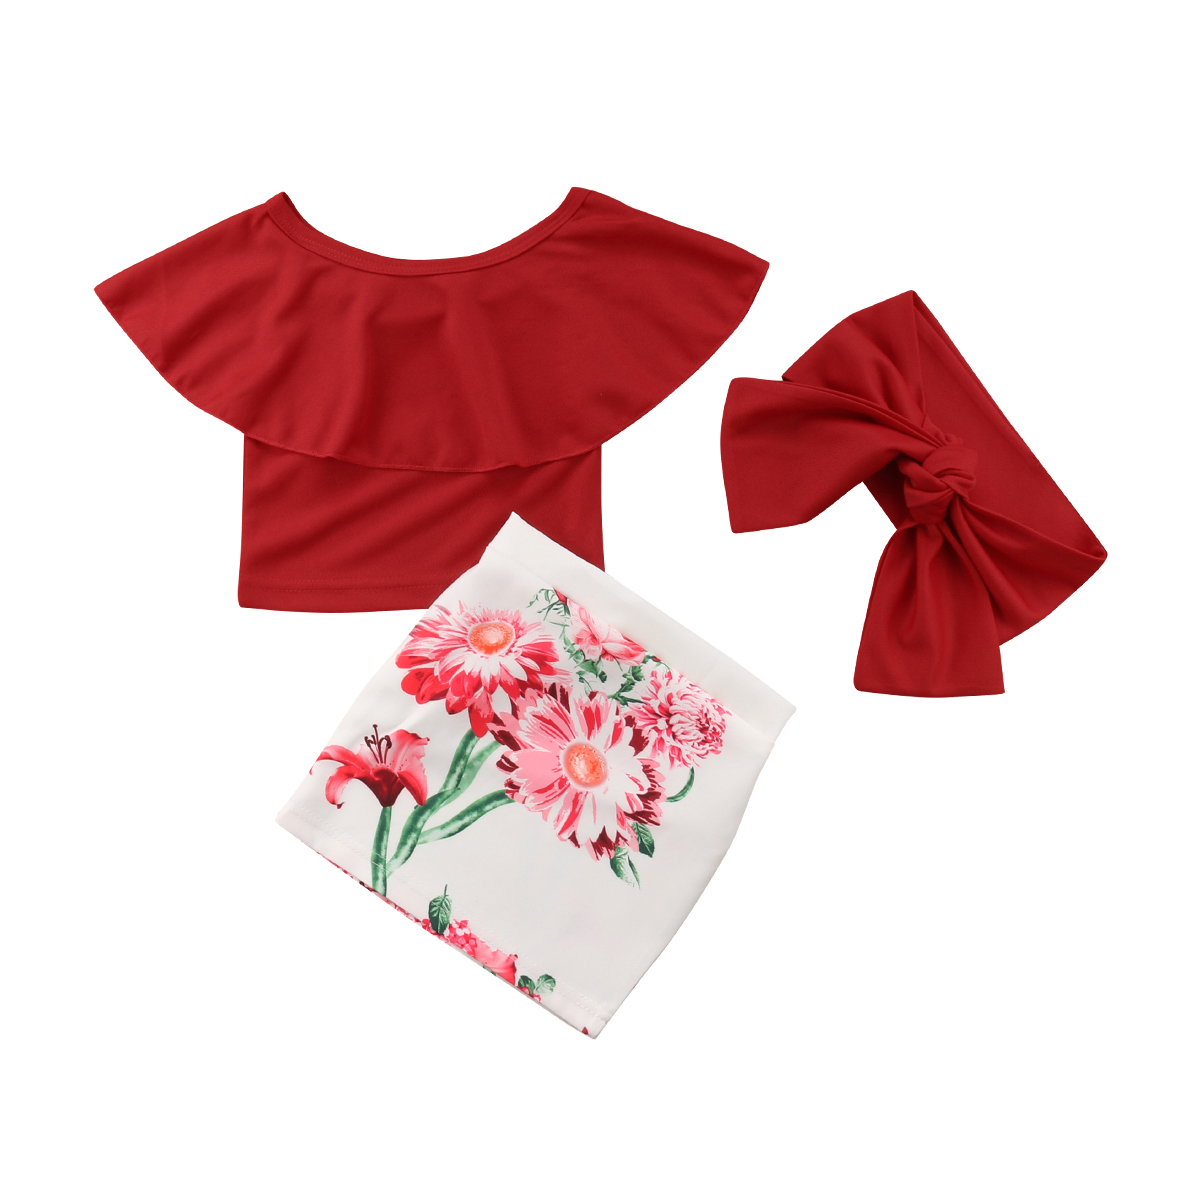 Kid Baby Girls Red Off Shoulder Tops Flower Skirts Headband Outfit Clothes Set Summer 1-6Y